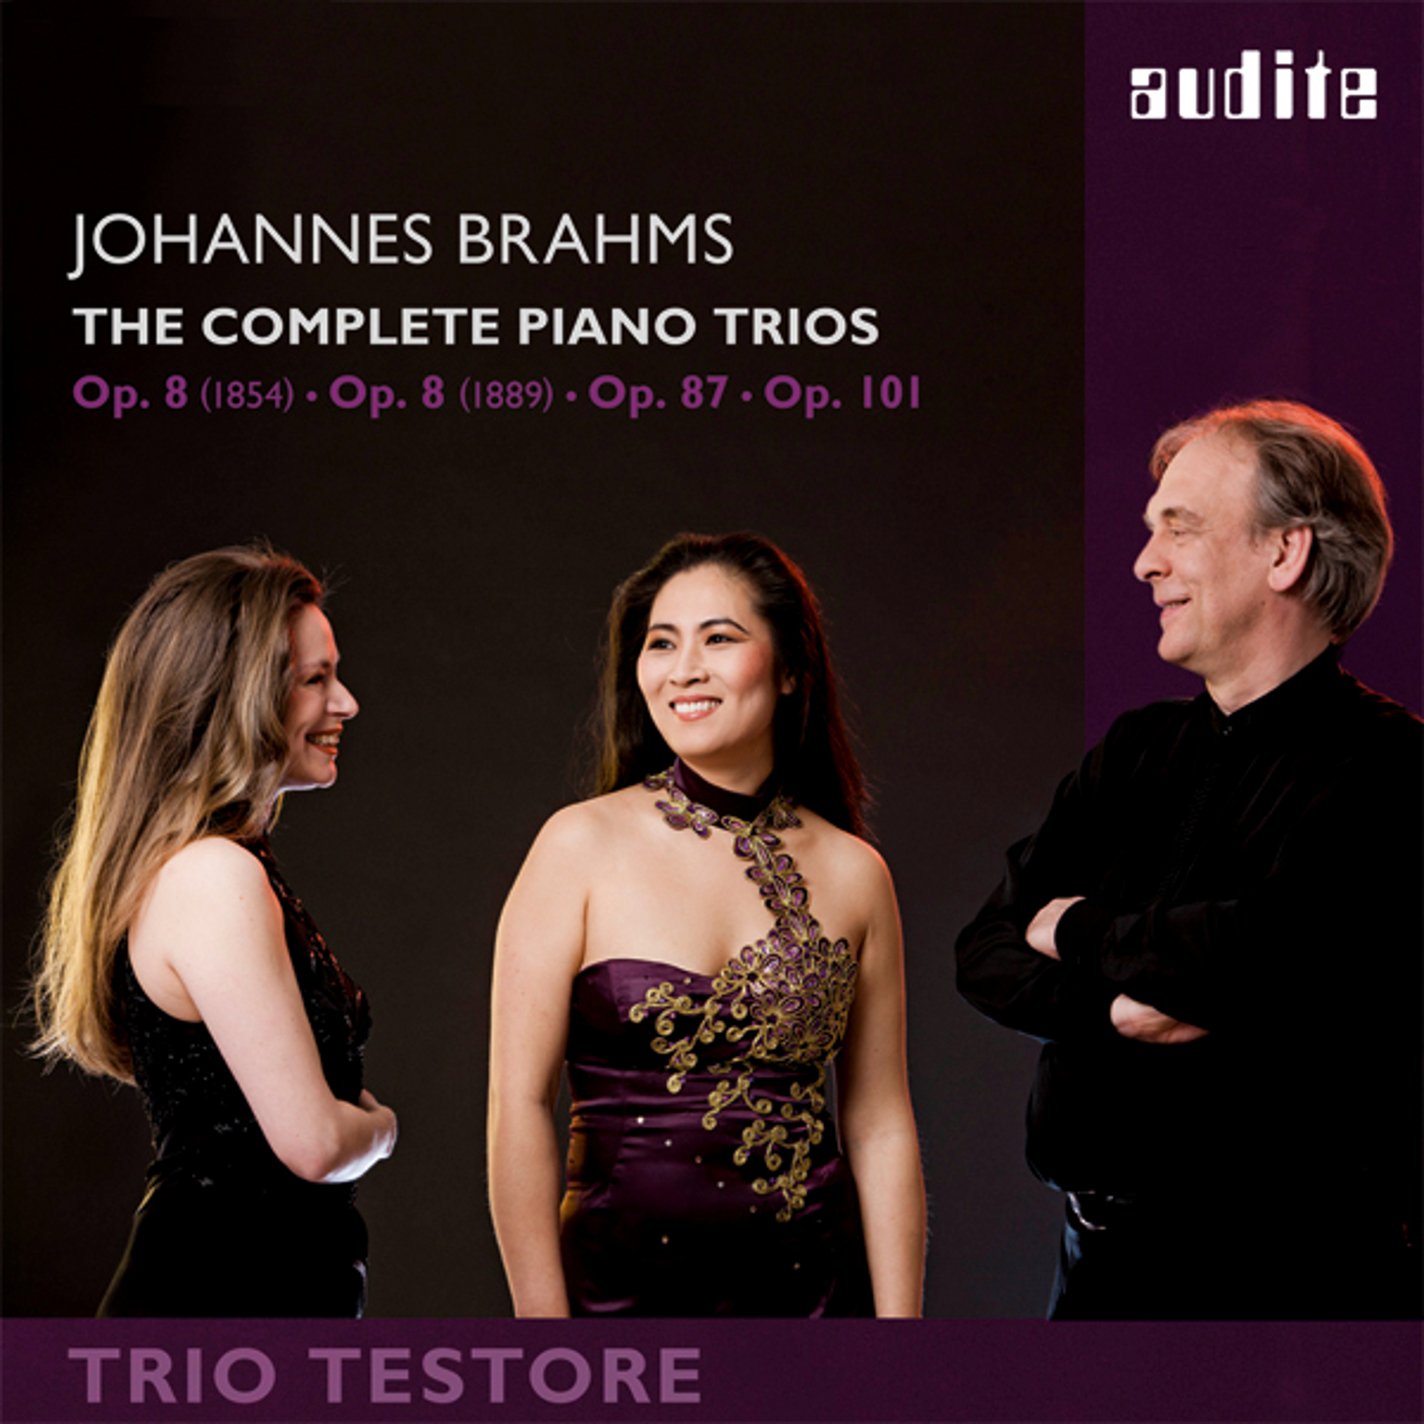 Piano Trio No. 1 in B Major, Op. 8 (1889 Version), Piano Trio No. 1 in B Major, Op. 8 (1889 Version): I. Allegro con brio